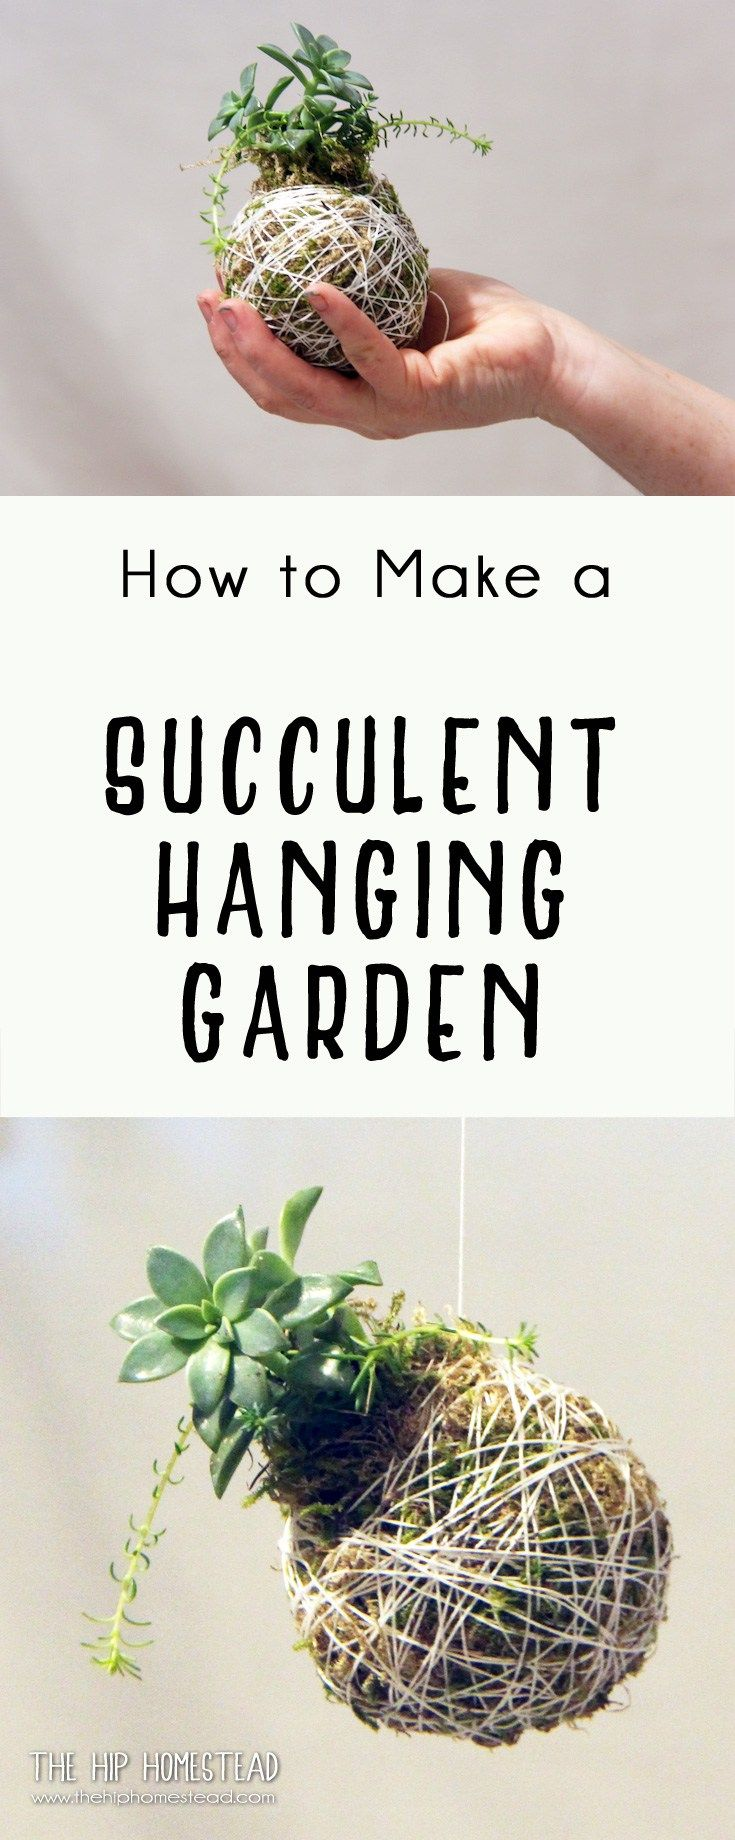 90 best succelents images on pinterest succulents gardening and